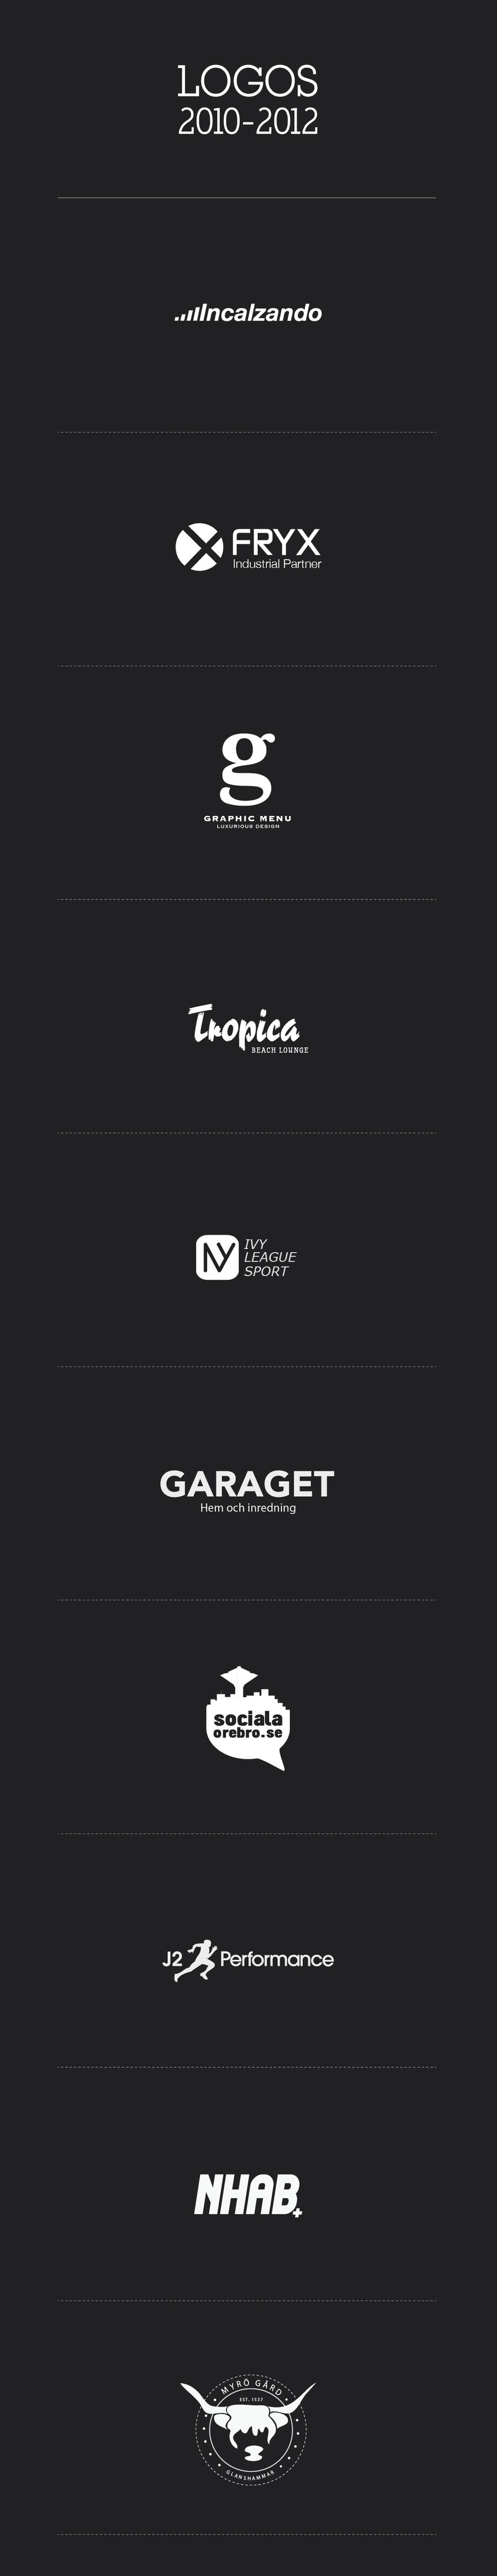 Logo collection 2010-2012 by vlahall